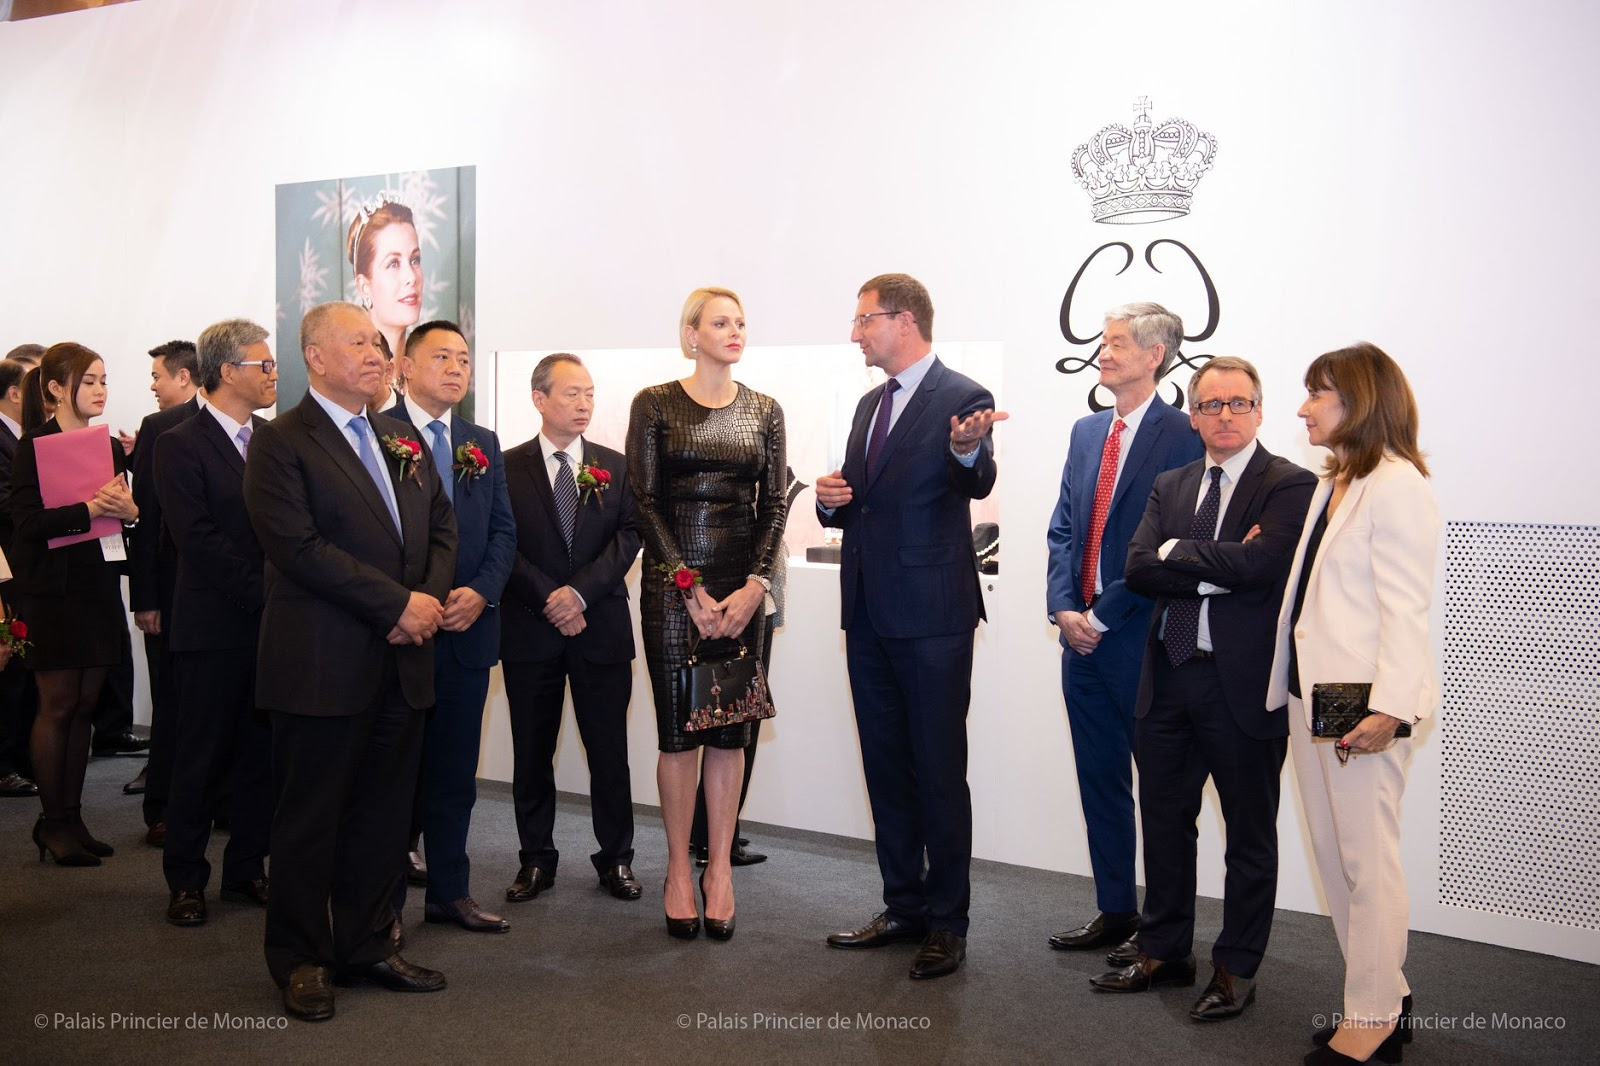 Princess Charlene Wears a black Tom Ford dress to Open Princess Grace Exhibition in Macau